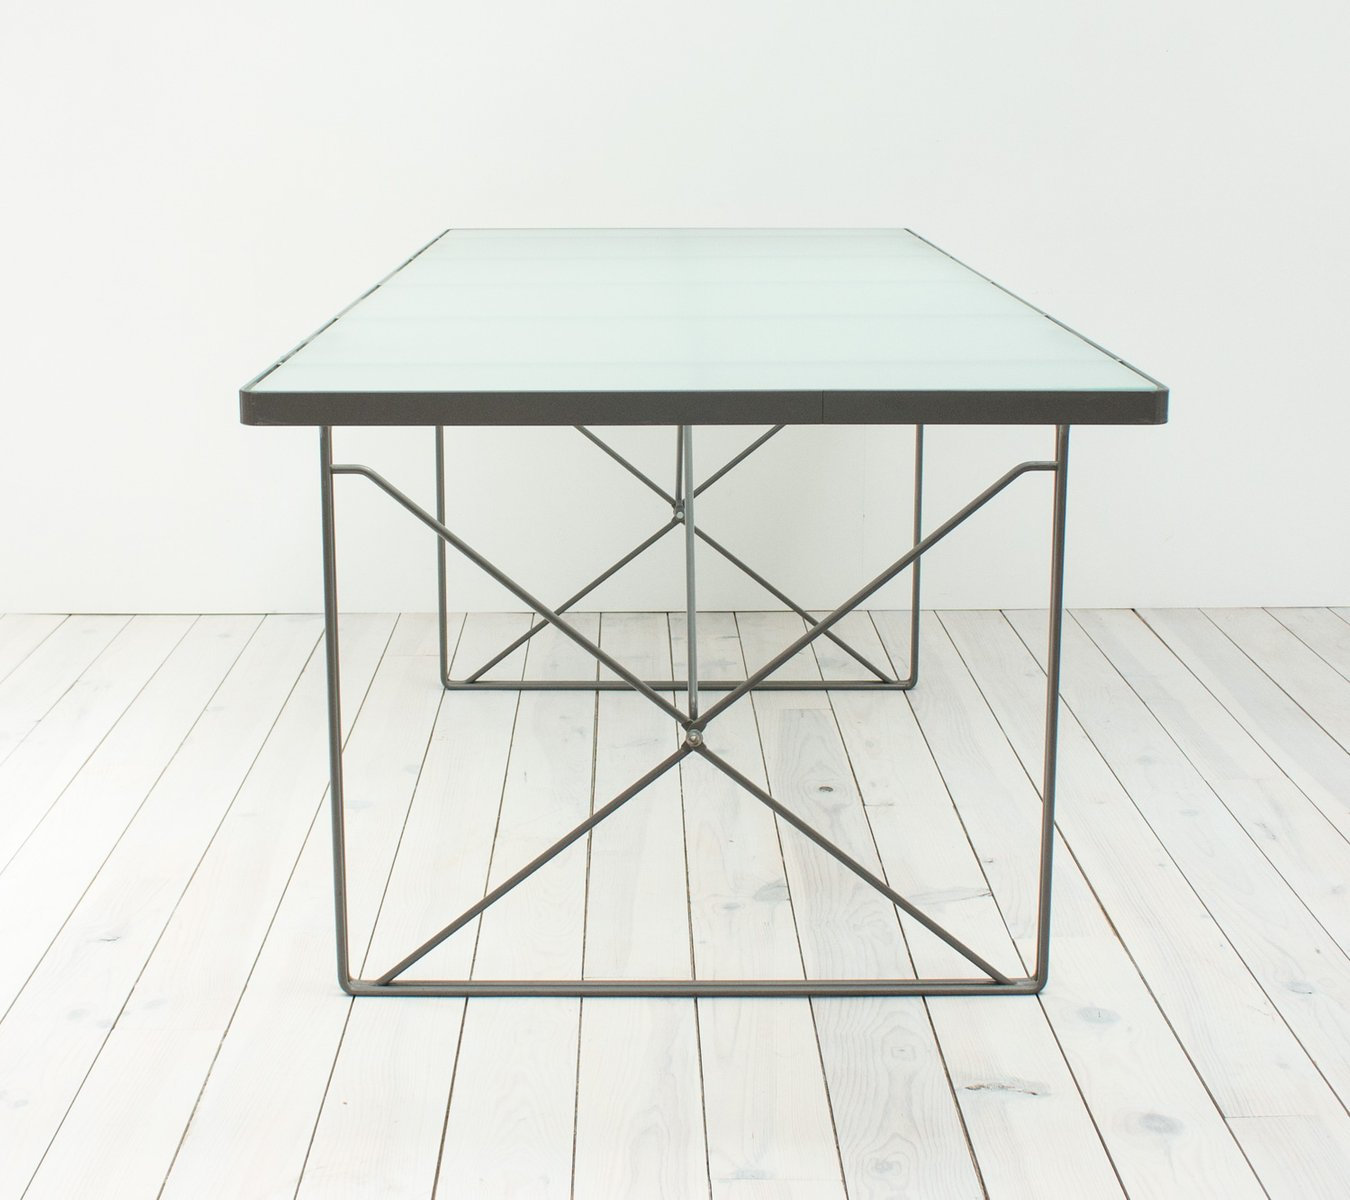 Moment glass dining table by niels gammelgaard for ikea 1987 for sale at pamono - Glass dining table ikea ...